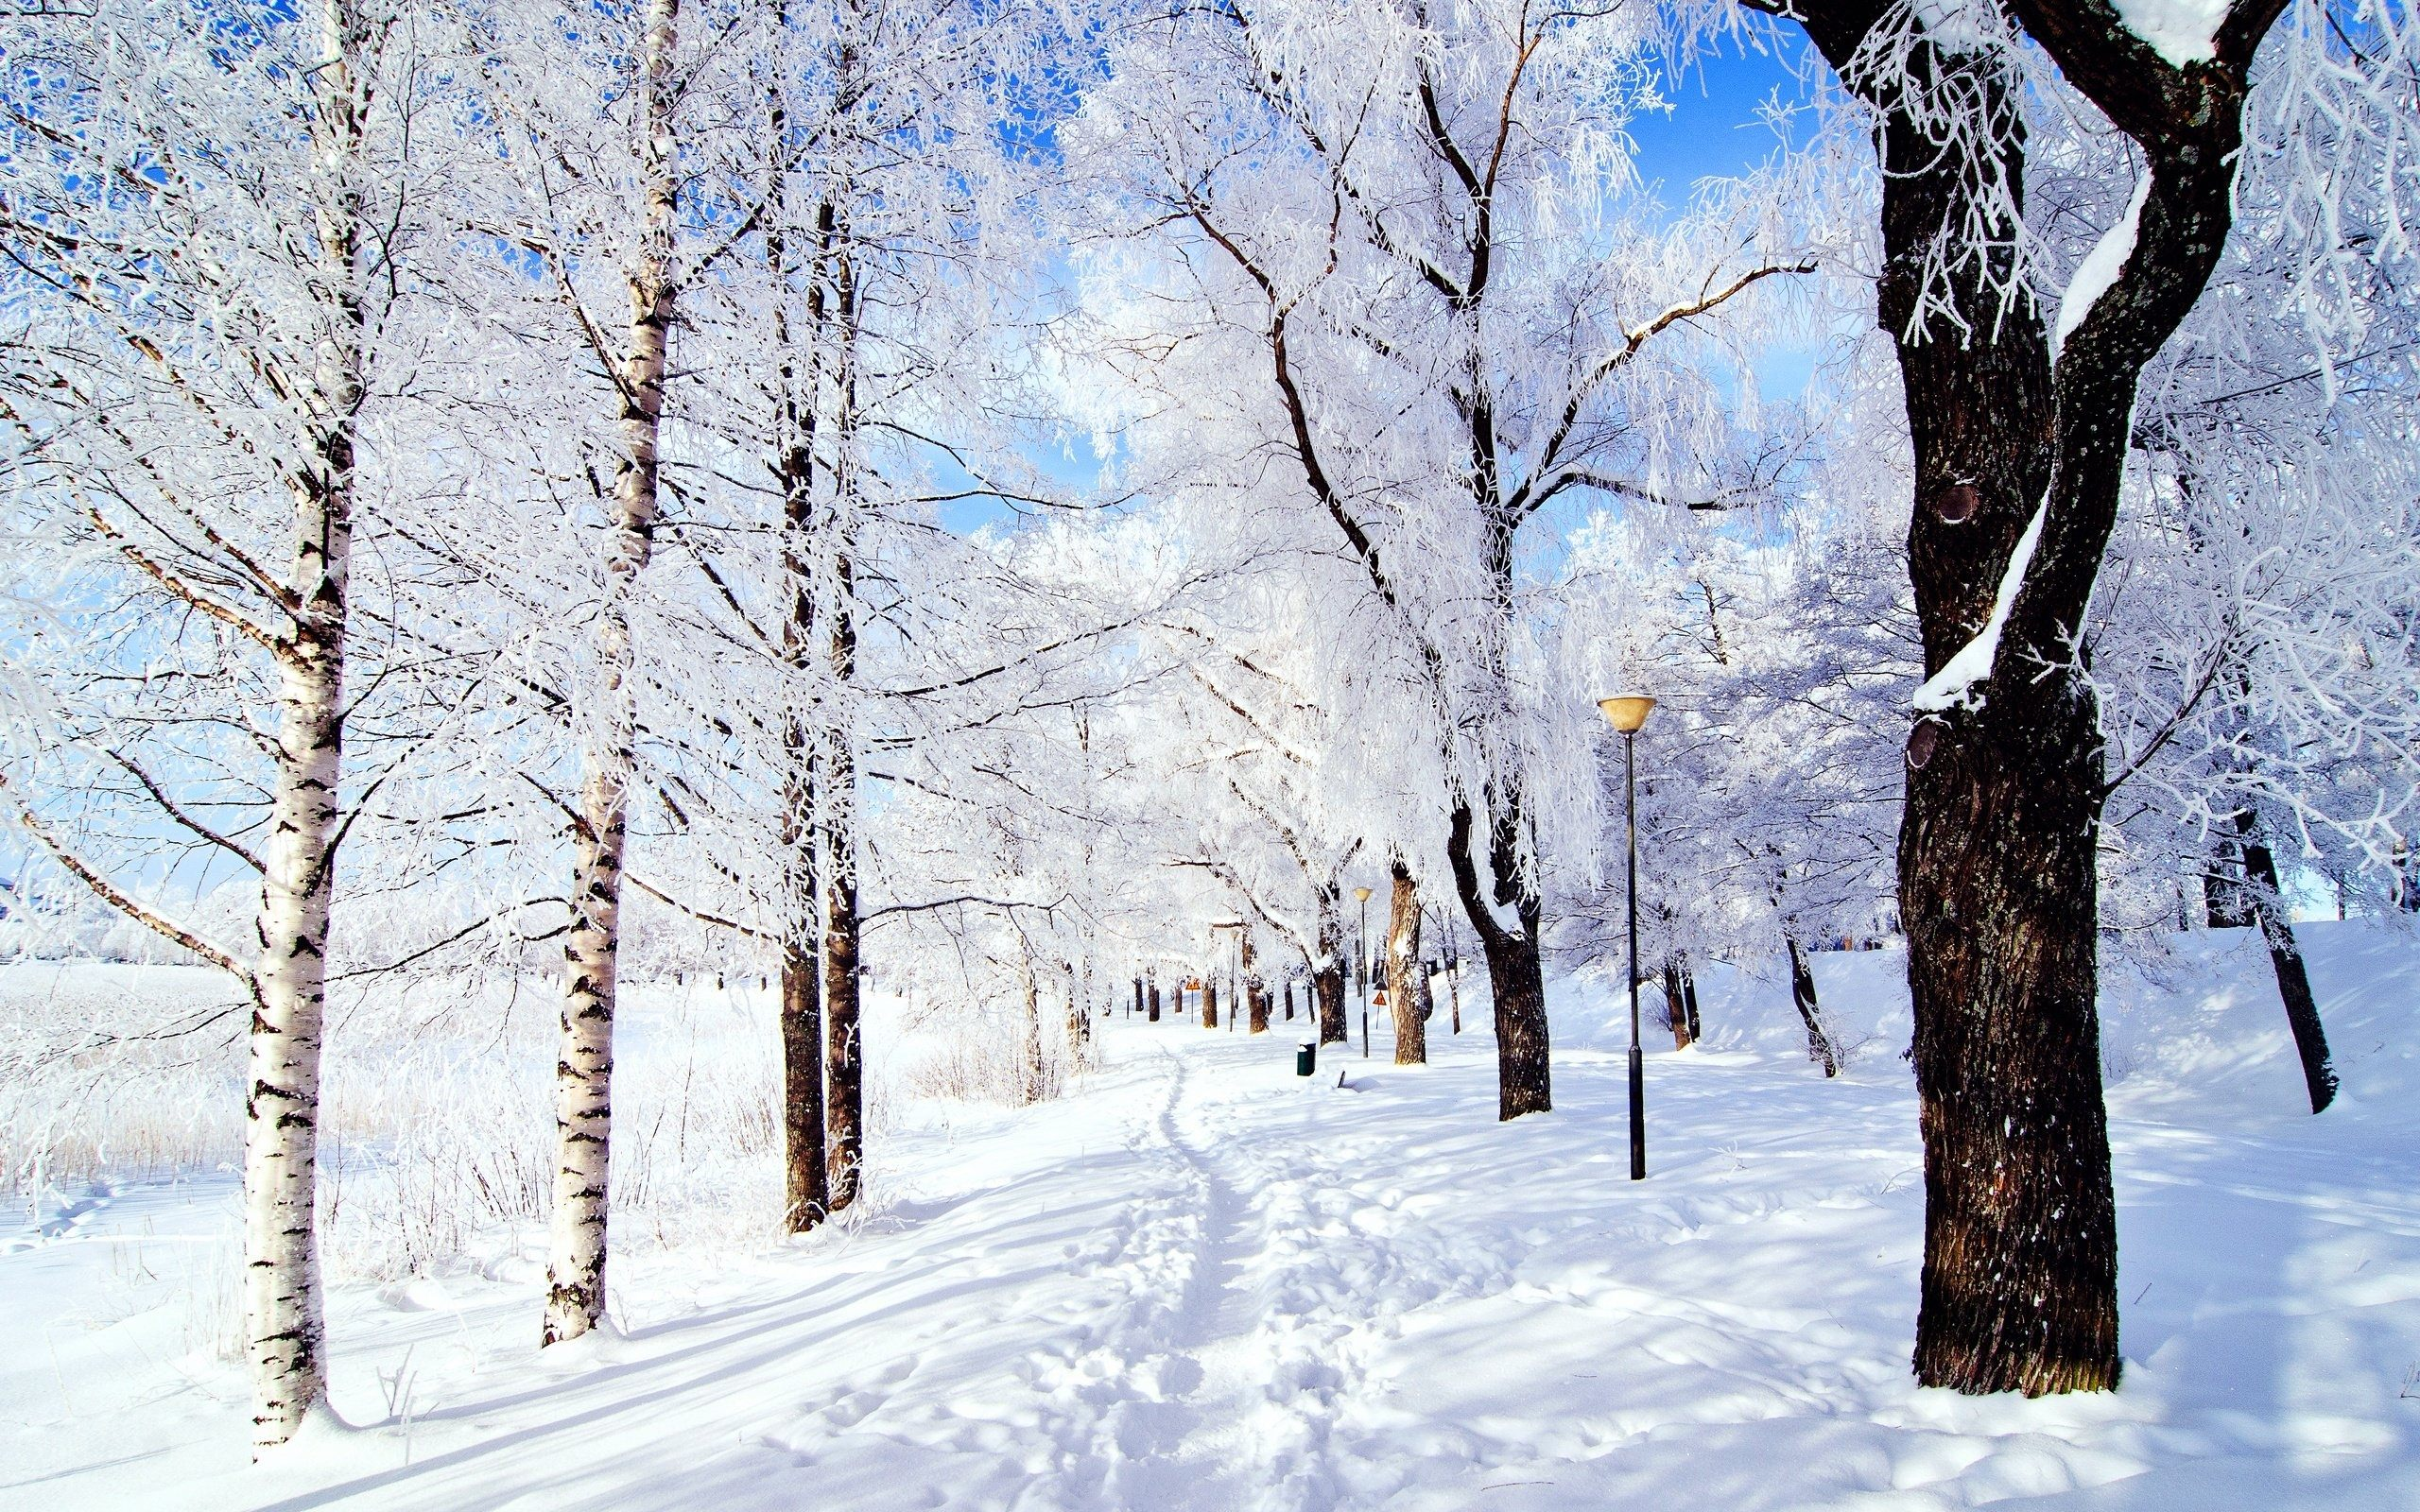 10 Snow Facts To Make You Feel Festive The List Love: beautiful snowfall pictures